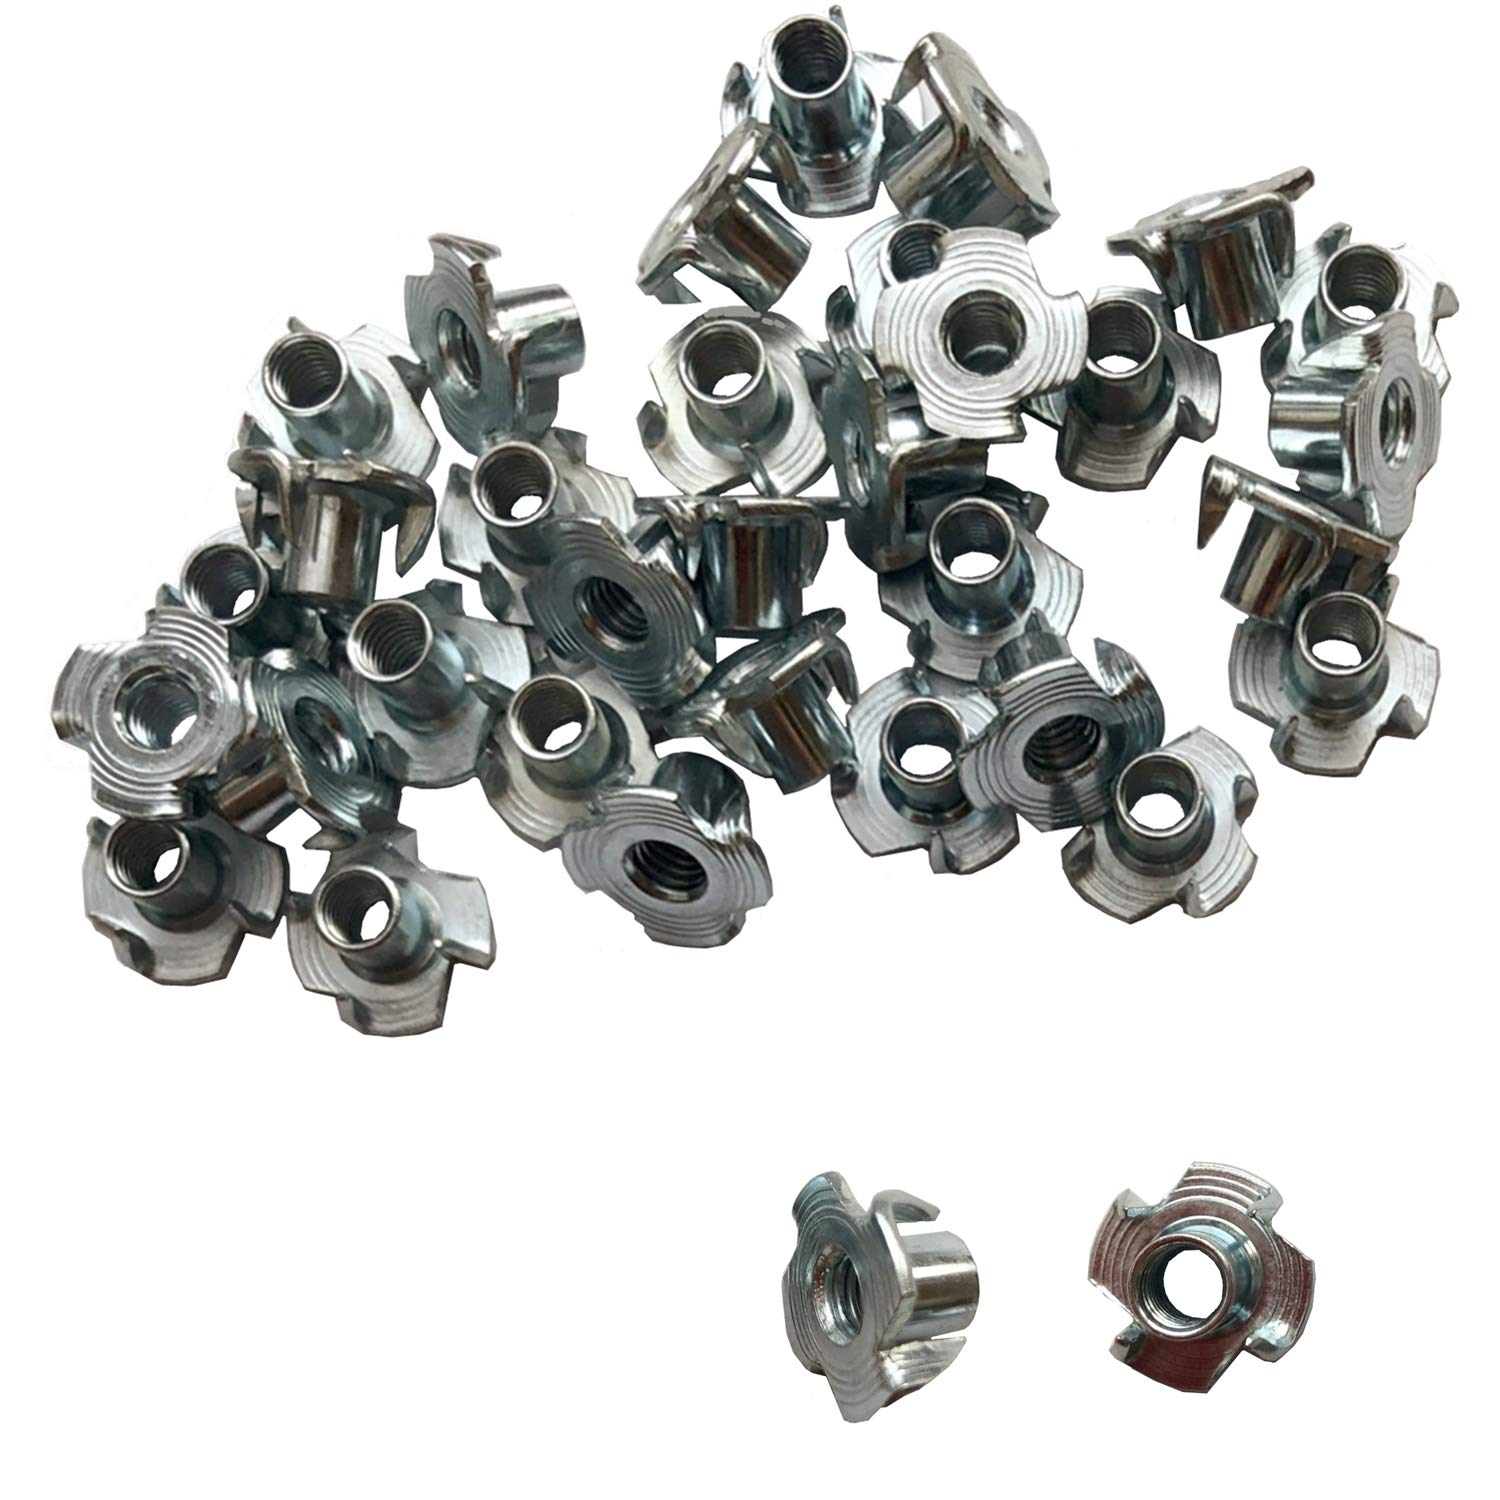 YMAISS T NUT M6 x 10mm 110 Pack 4 Pronged Zinc Plated Tee T Nut Assortment Kit Silver Color for Rock Climbing Holds Wood Cabinetry etc.